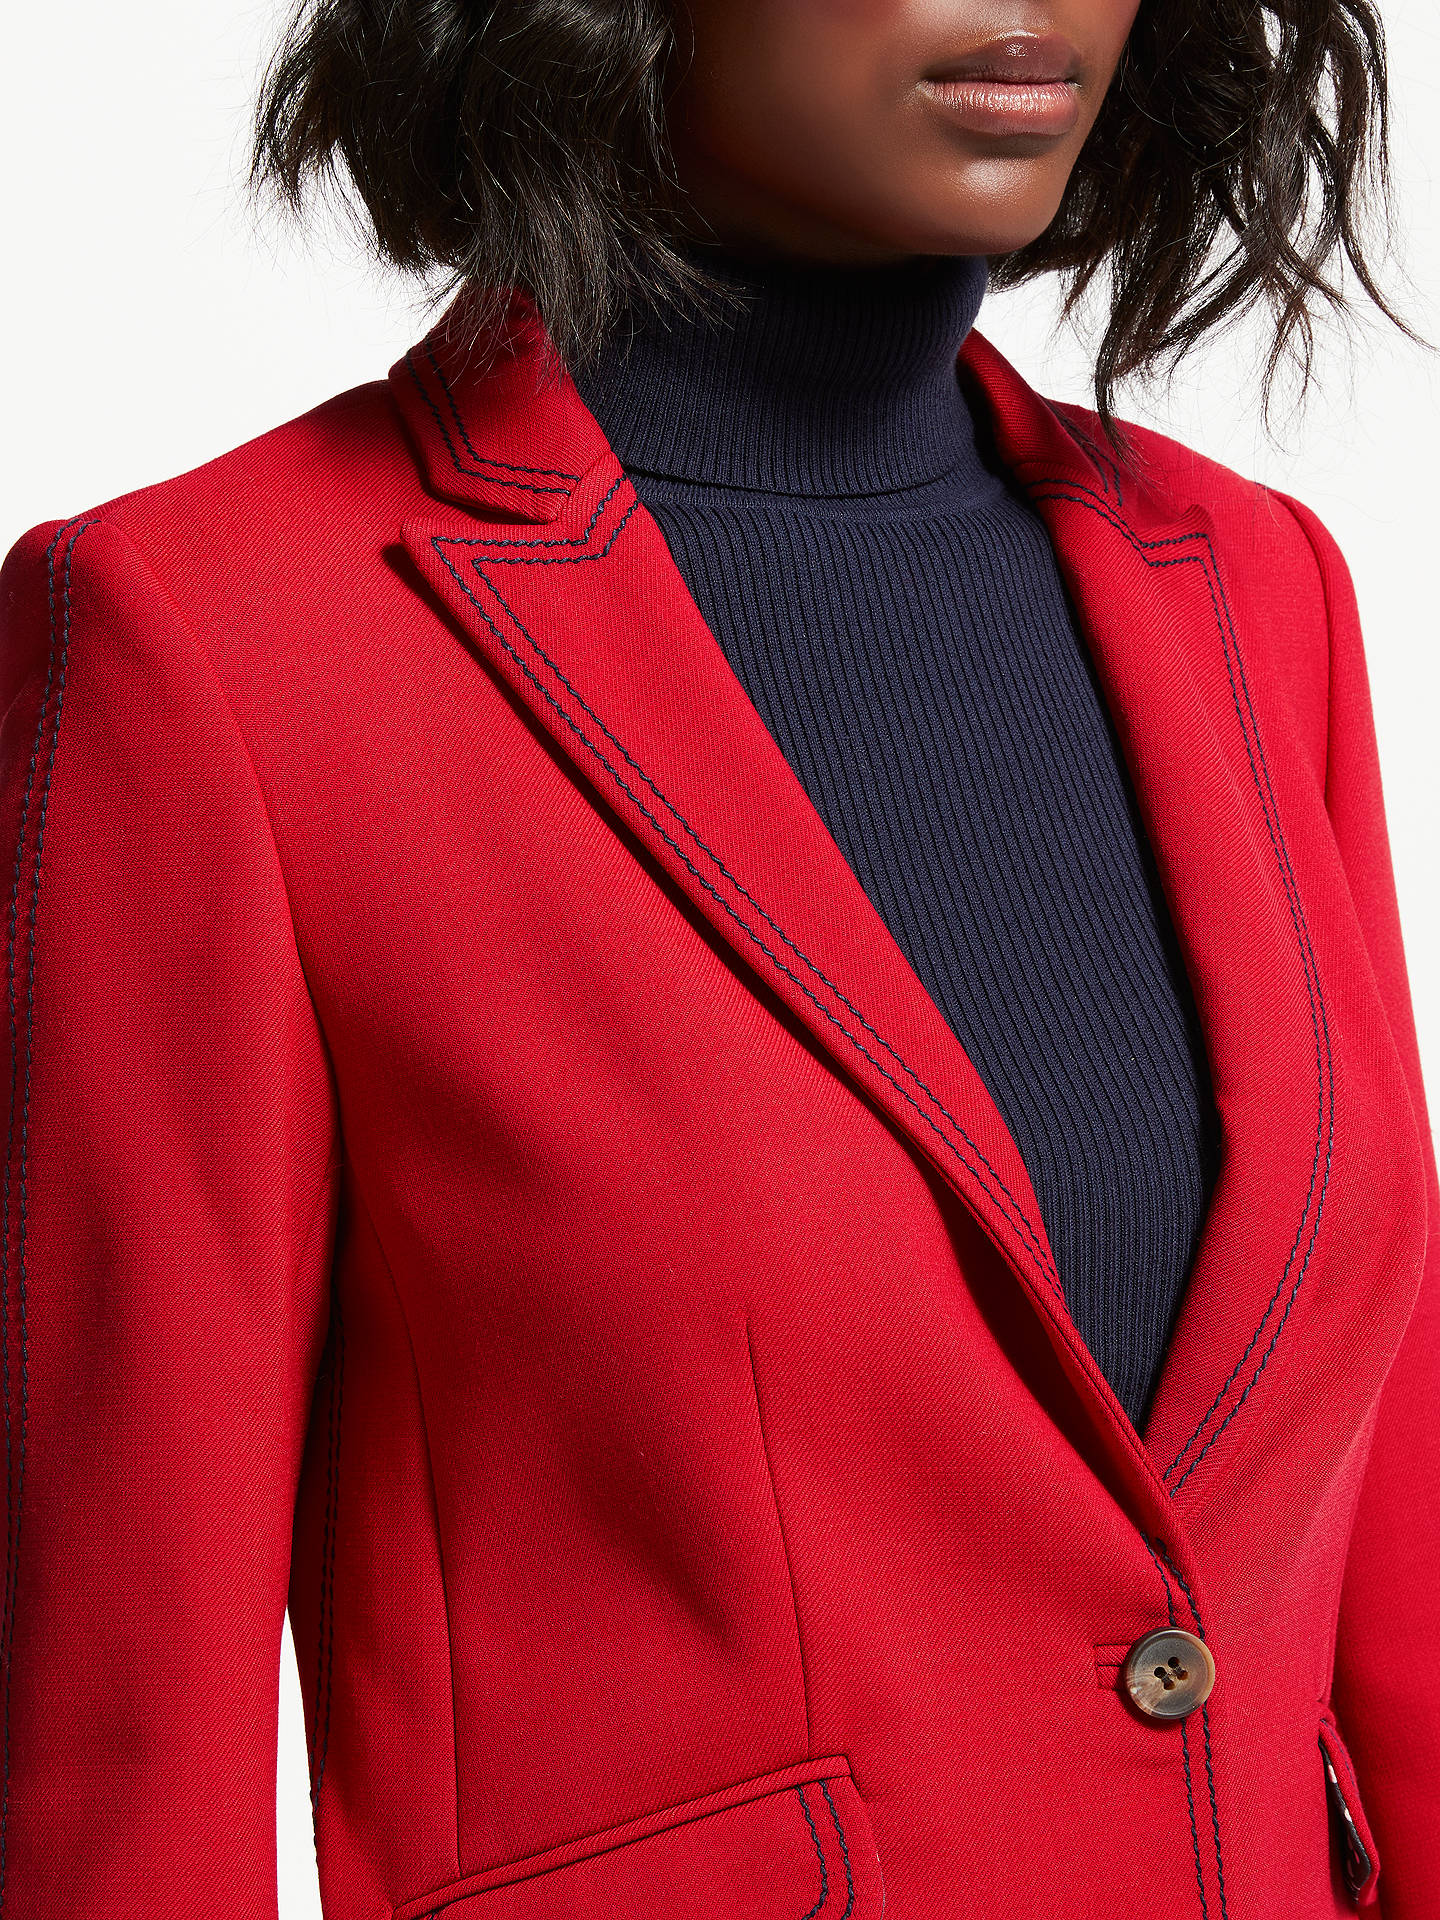 BuyBoden Winsford Blazer, Poinsettia, 8 Online at johnlewis.com